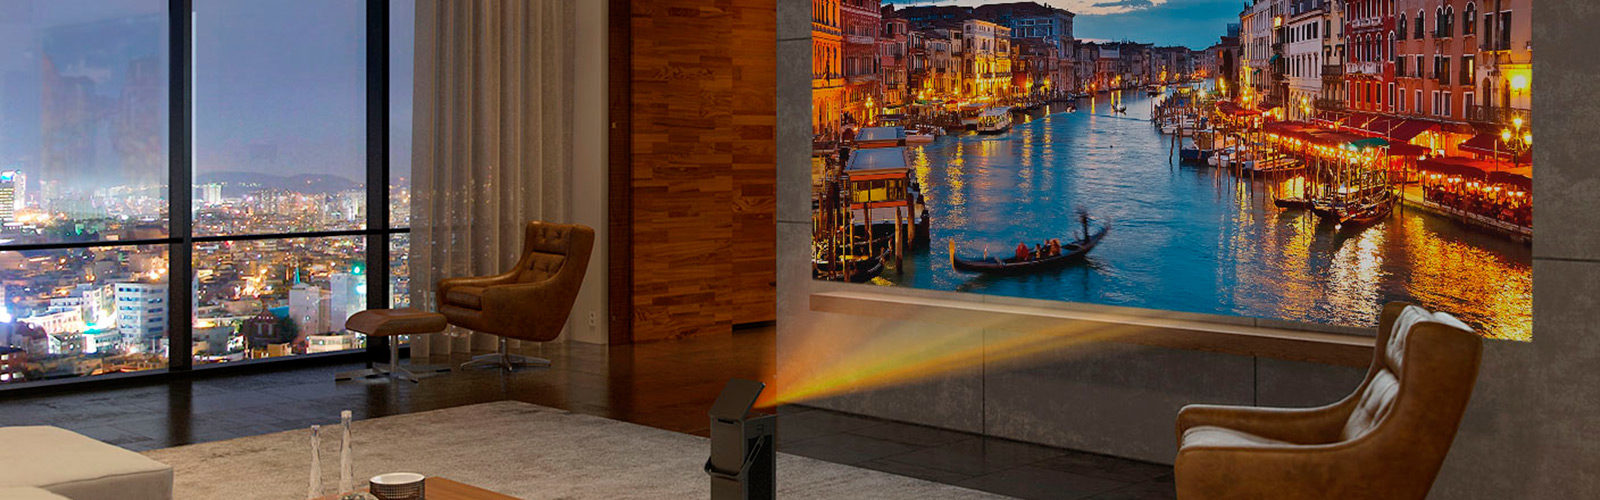 LG Cinebeam 4k Projector Truly Beams